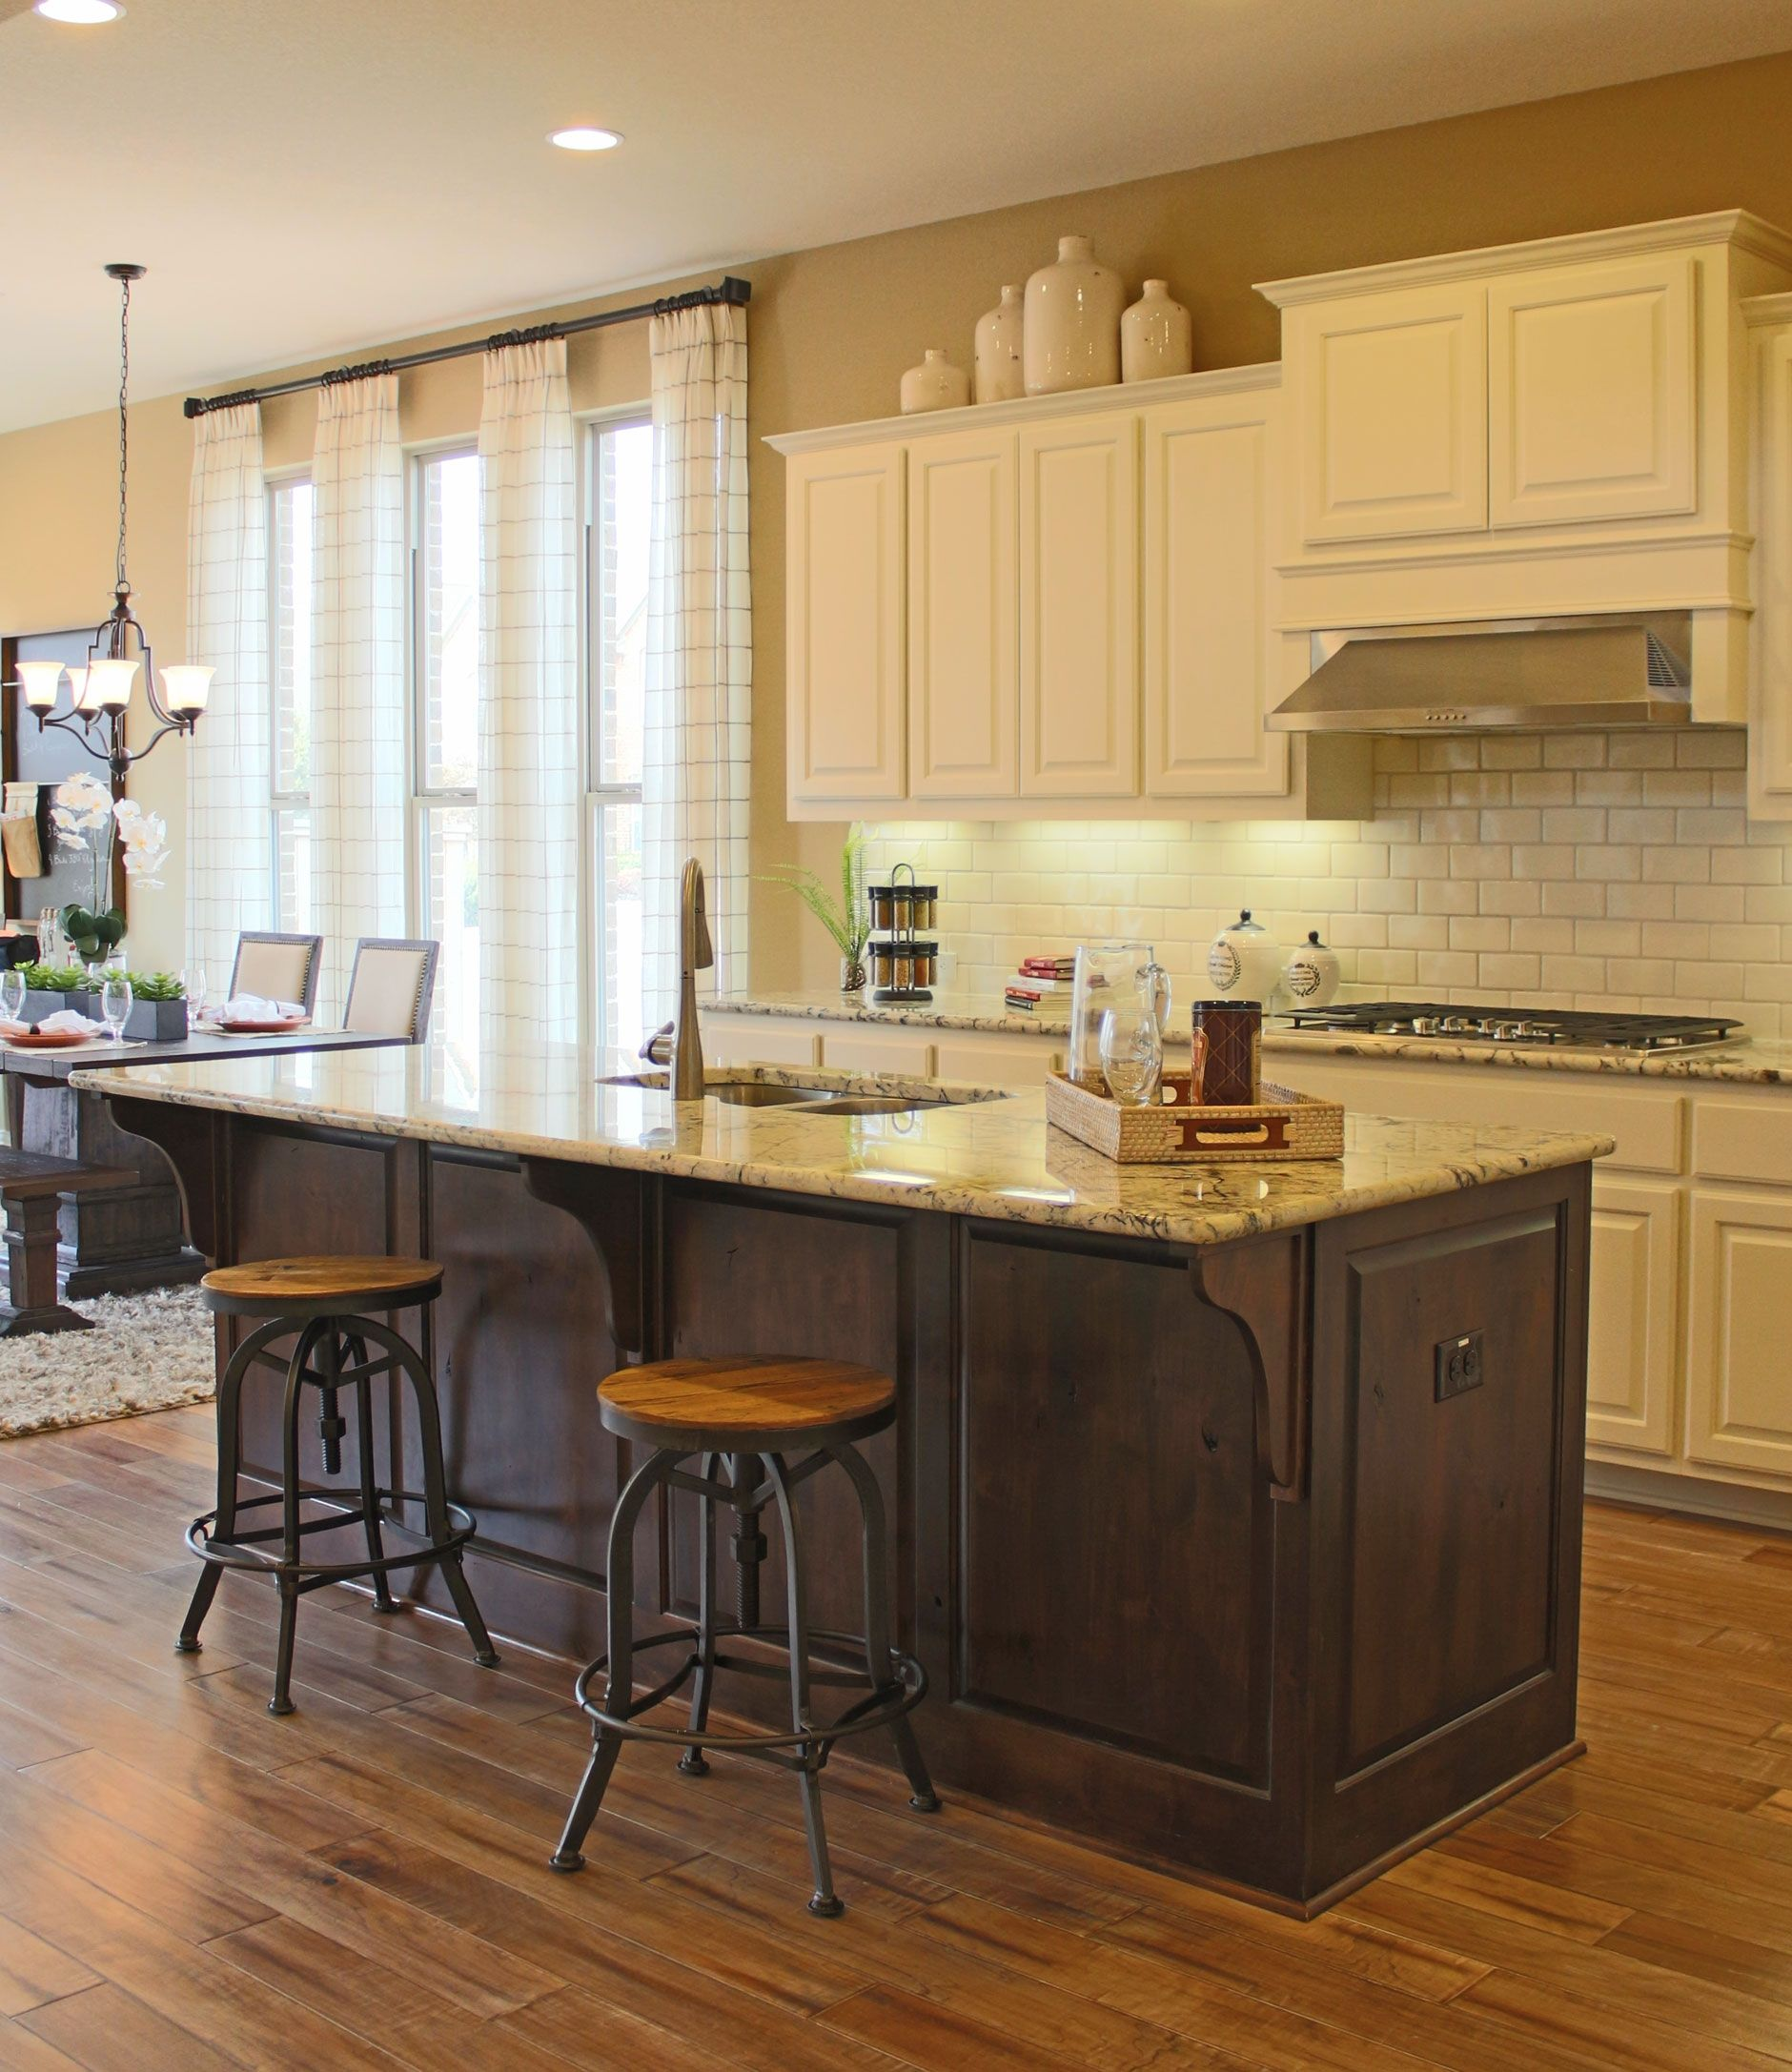 no cabinets dark countertops island job and painted detailed traditional off with shabby kitchen chic precision white corbels countertop